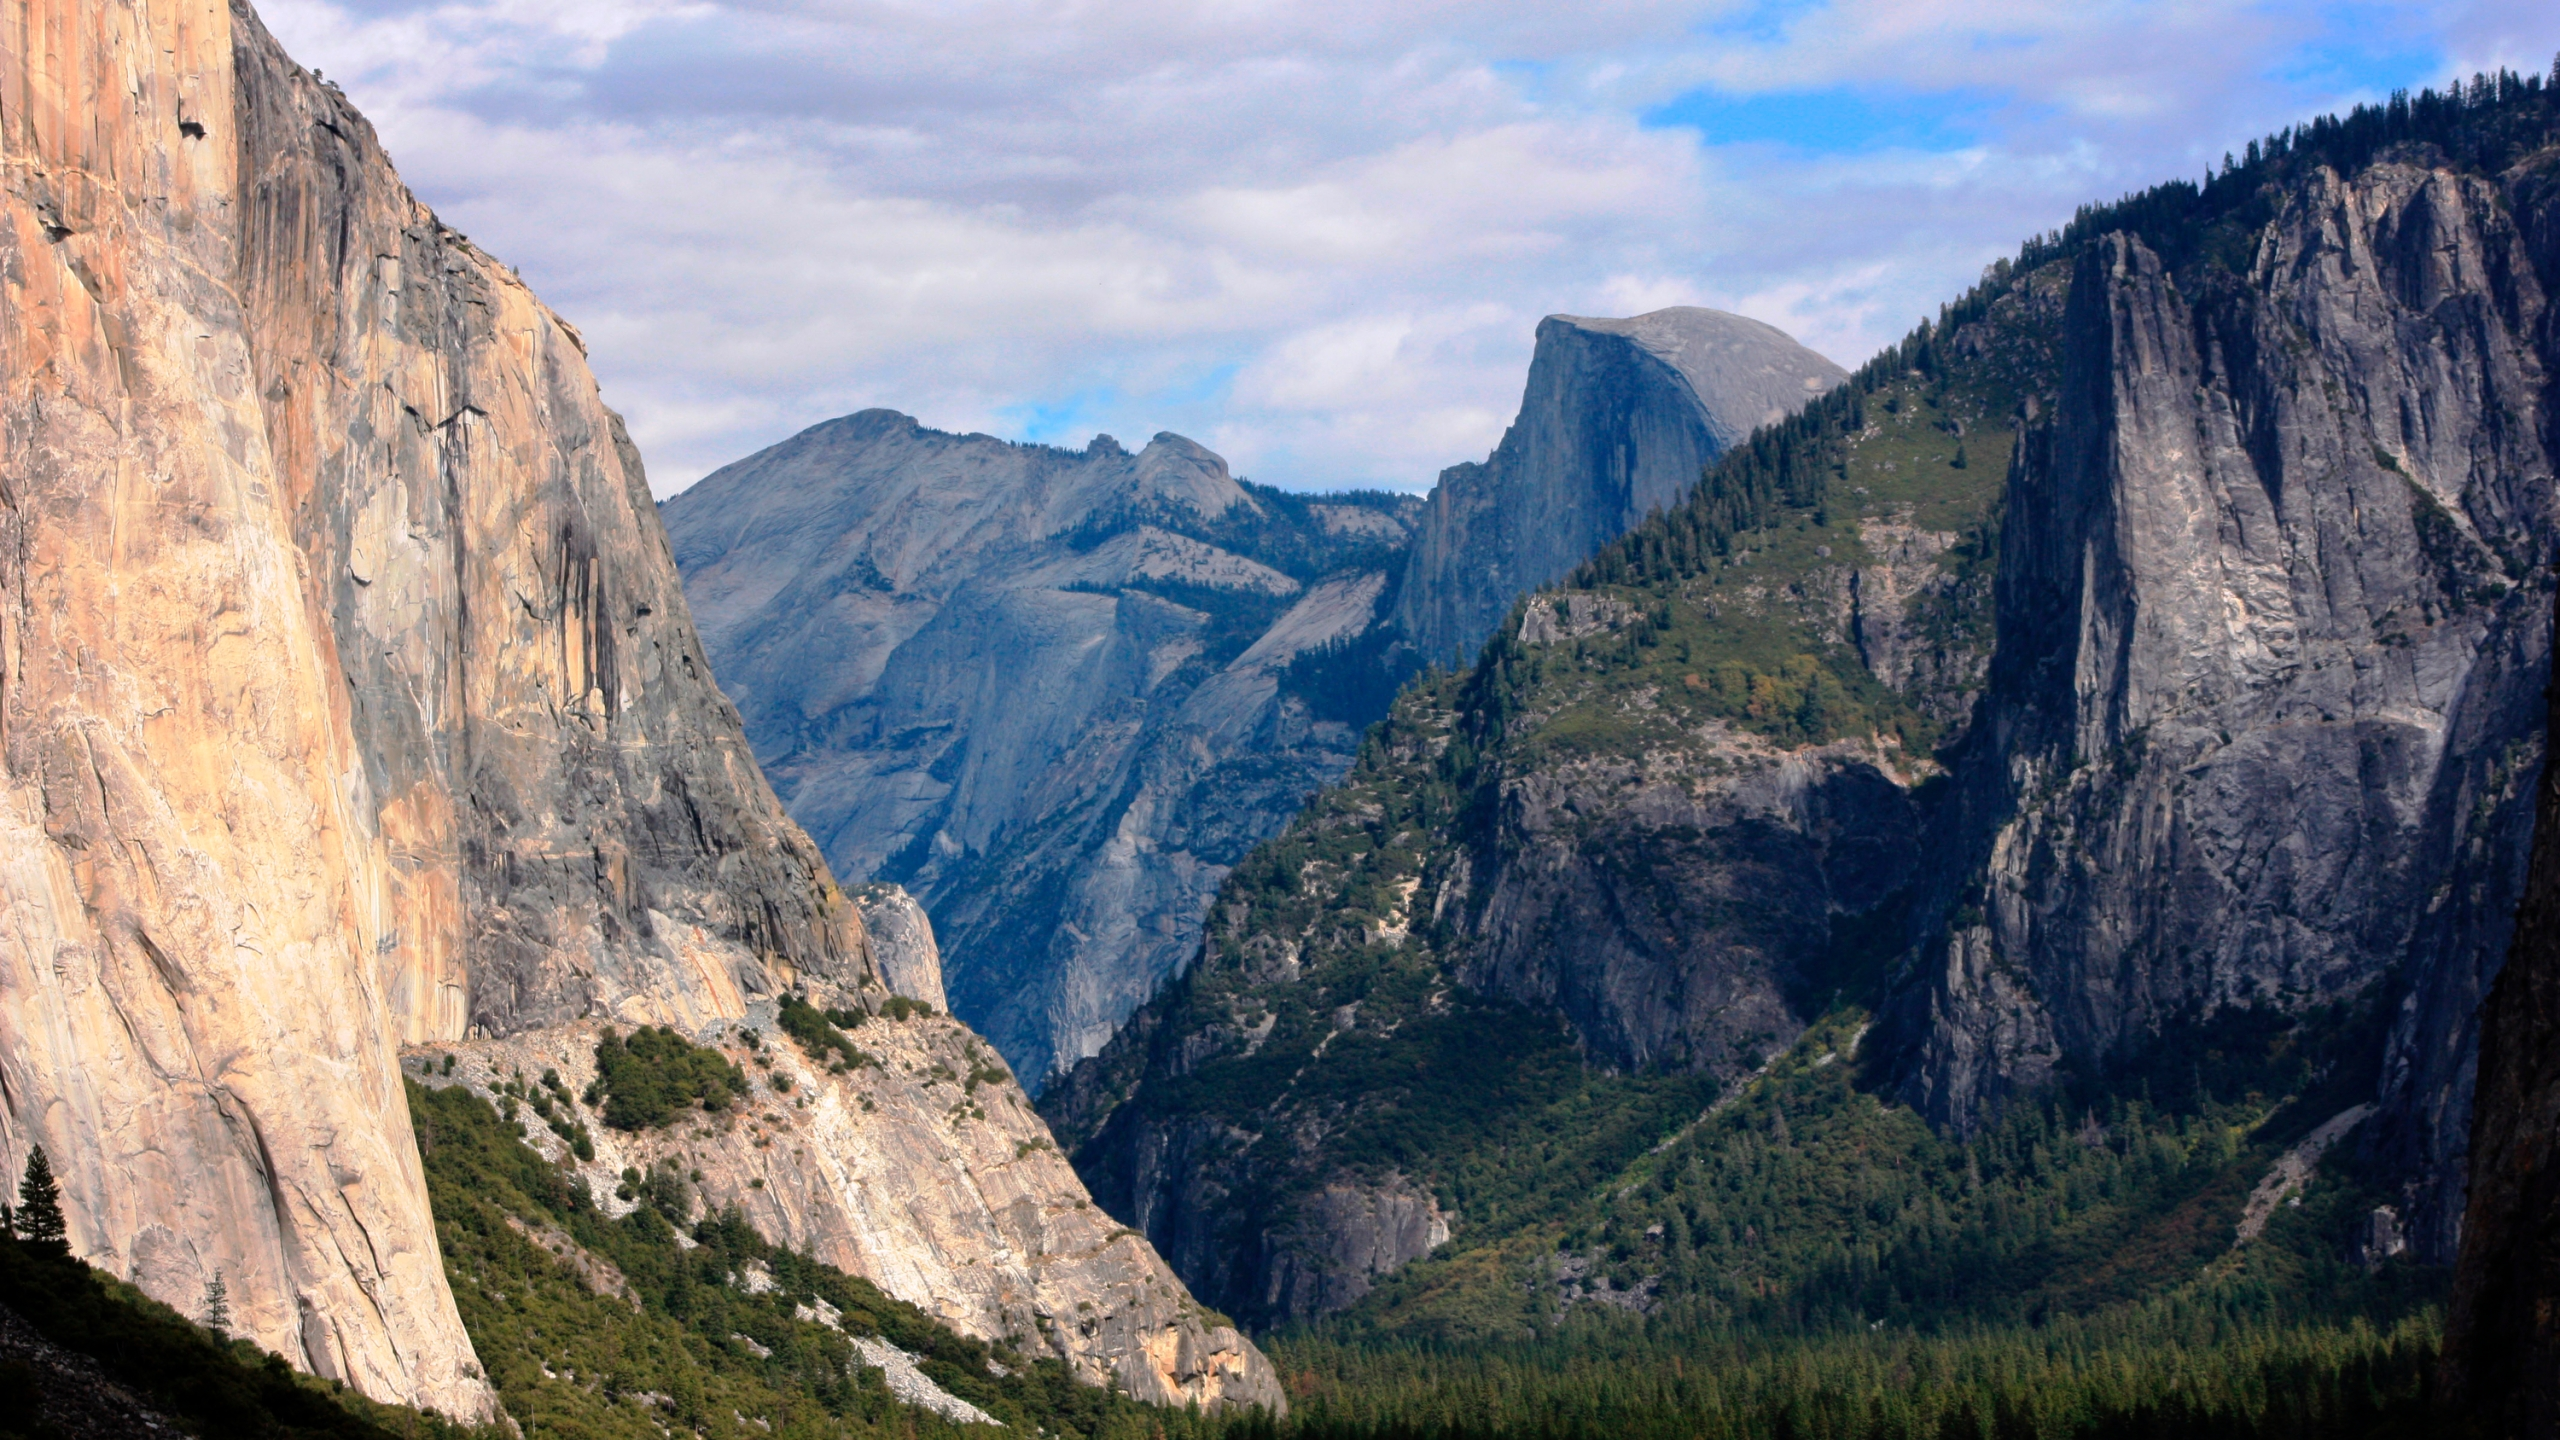 This Oct. 2, 2013, file photo, shows a view seen on the way to Glacier Point trail in Yosemite National Park. (Tammy Webber/Associated Press)